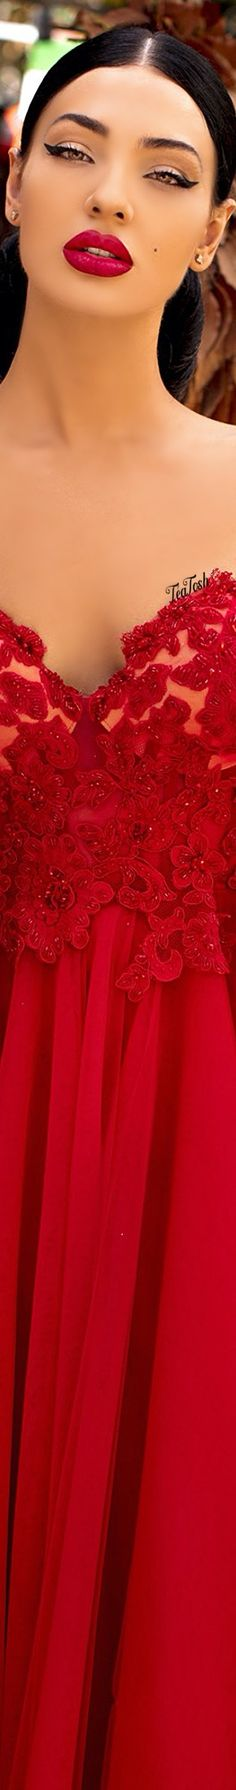 Party Dresses, Formal Dresses, Afternoon Delight, Evening Cocktail, Shades Of Red, Bella, Faces, Beautiful Women, Colour